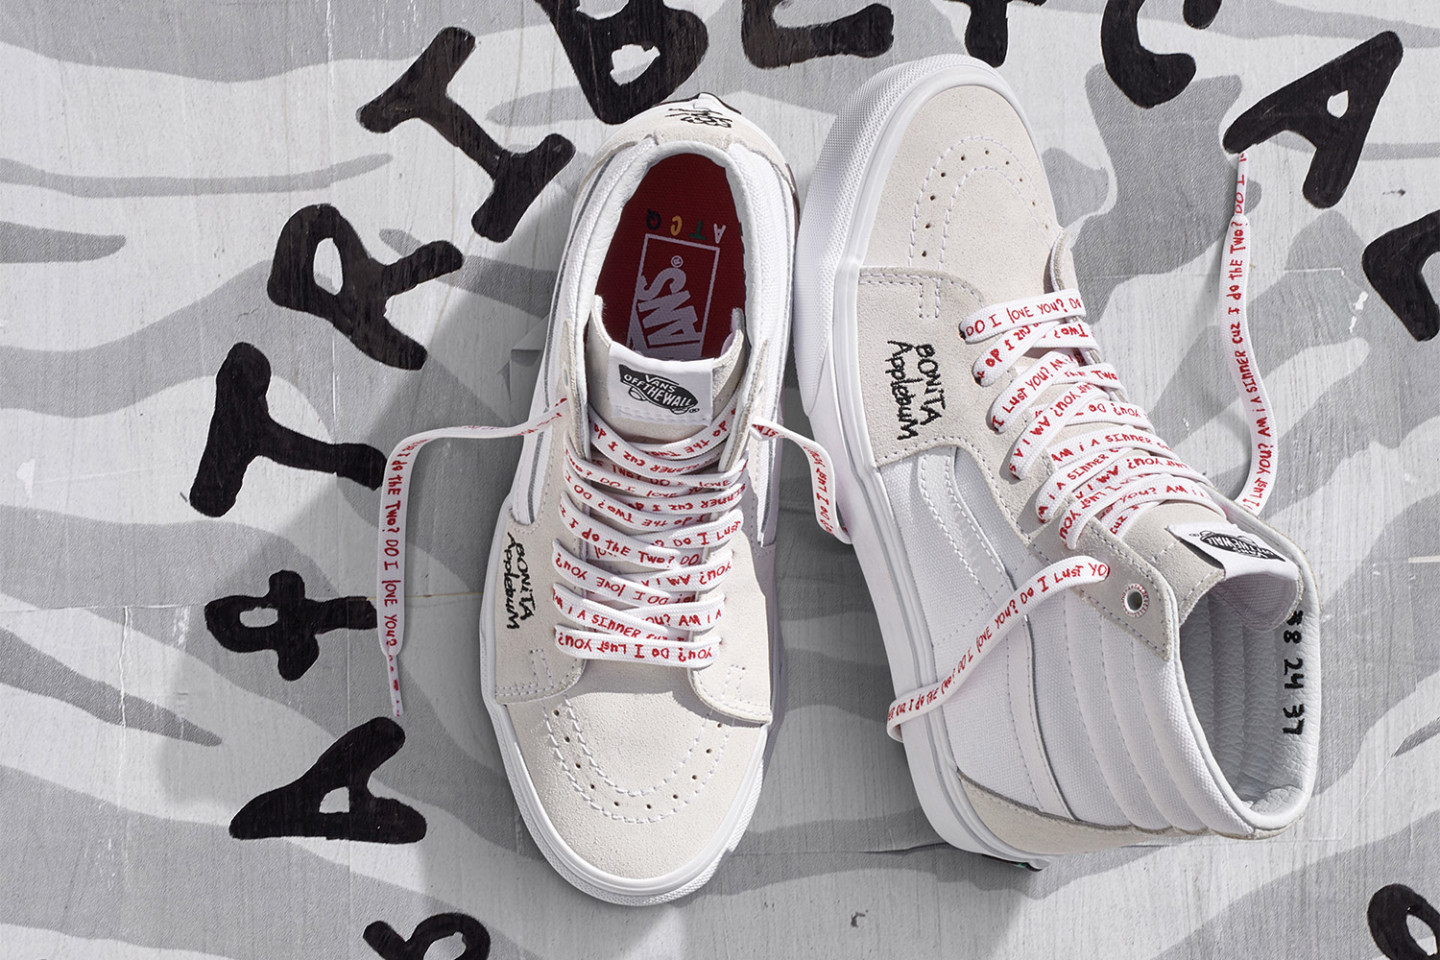 vans-a-tribe-called-quest-capsule-09-1440x960